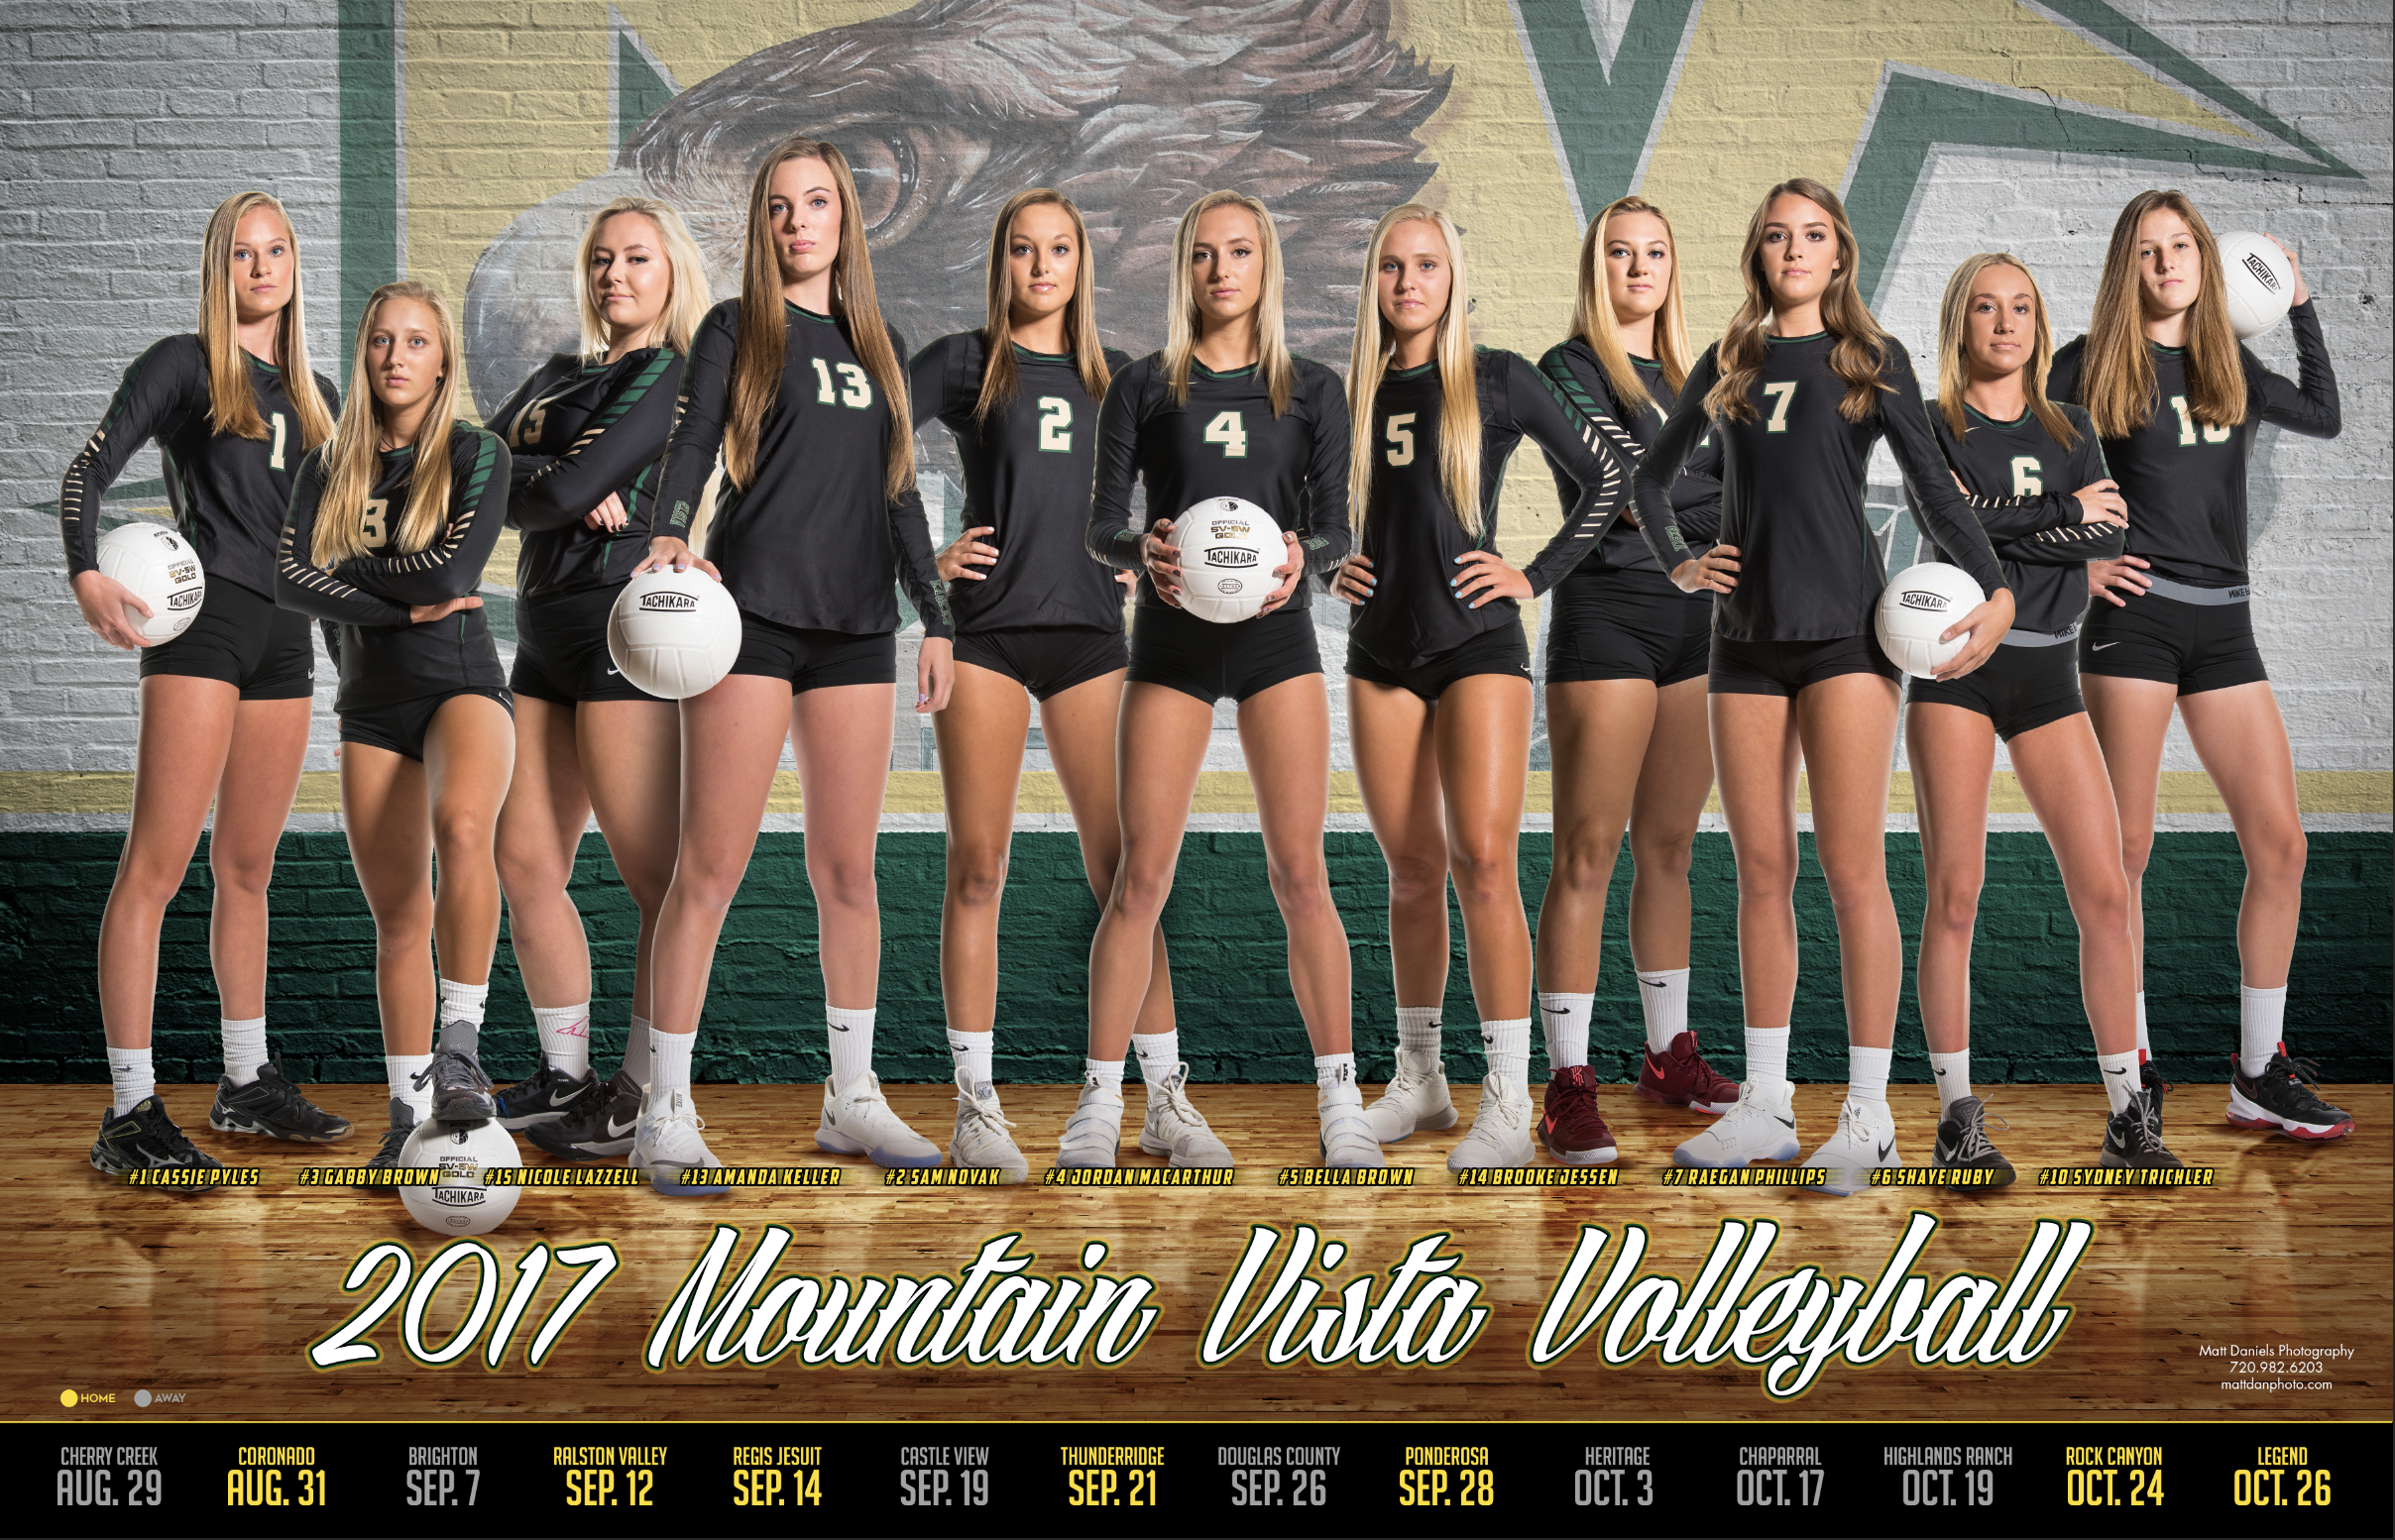 Photography And Poster Design For The 2017 Mountain View Volleyball Team Copyright 2017 Matt Da Volleyball Photography Volleyball Team Sports Team Photography